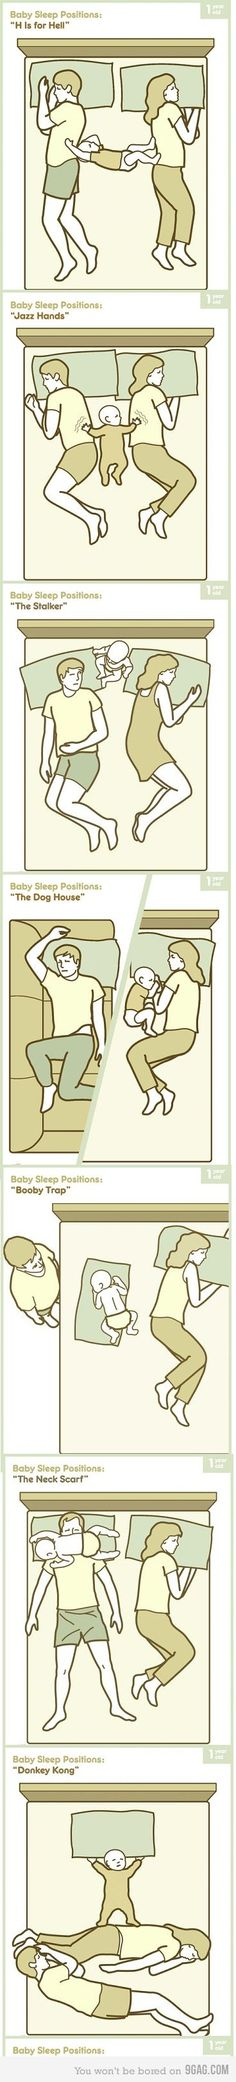 Just some baby sleeping positions